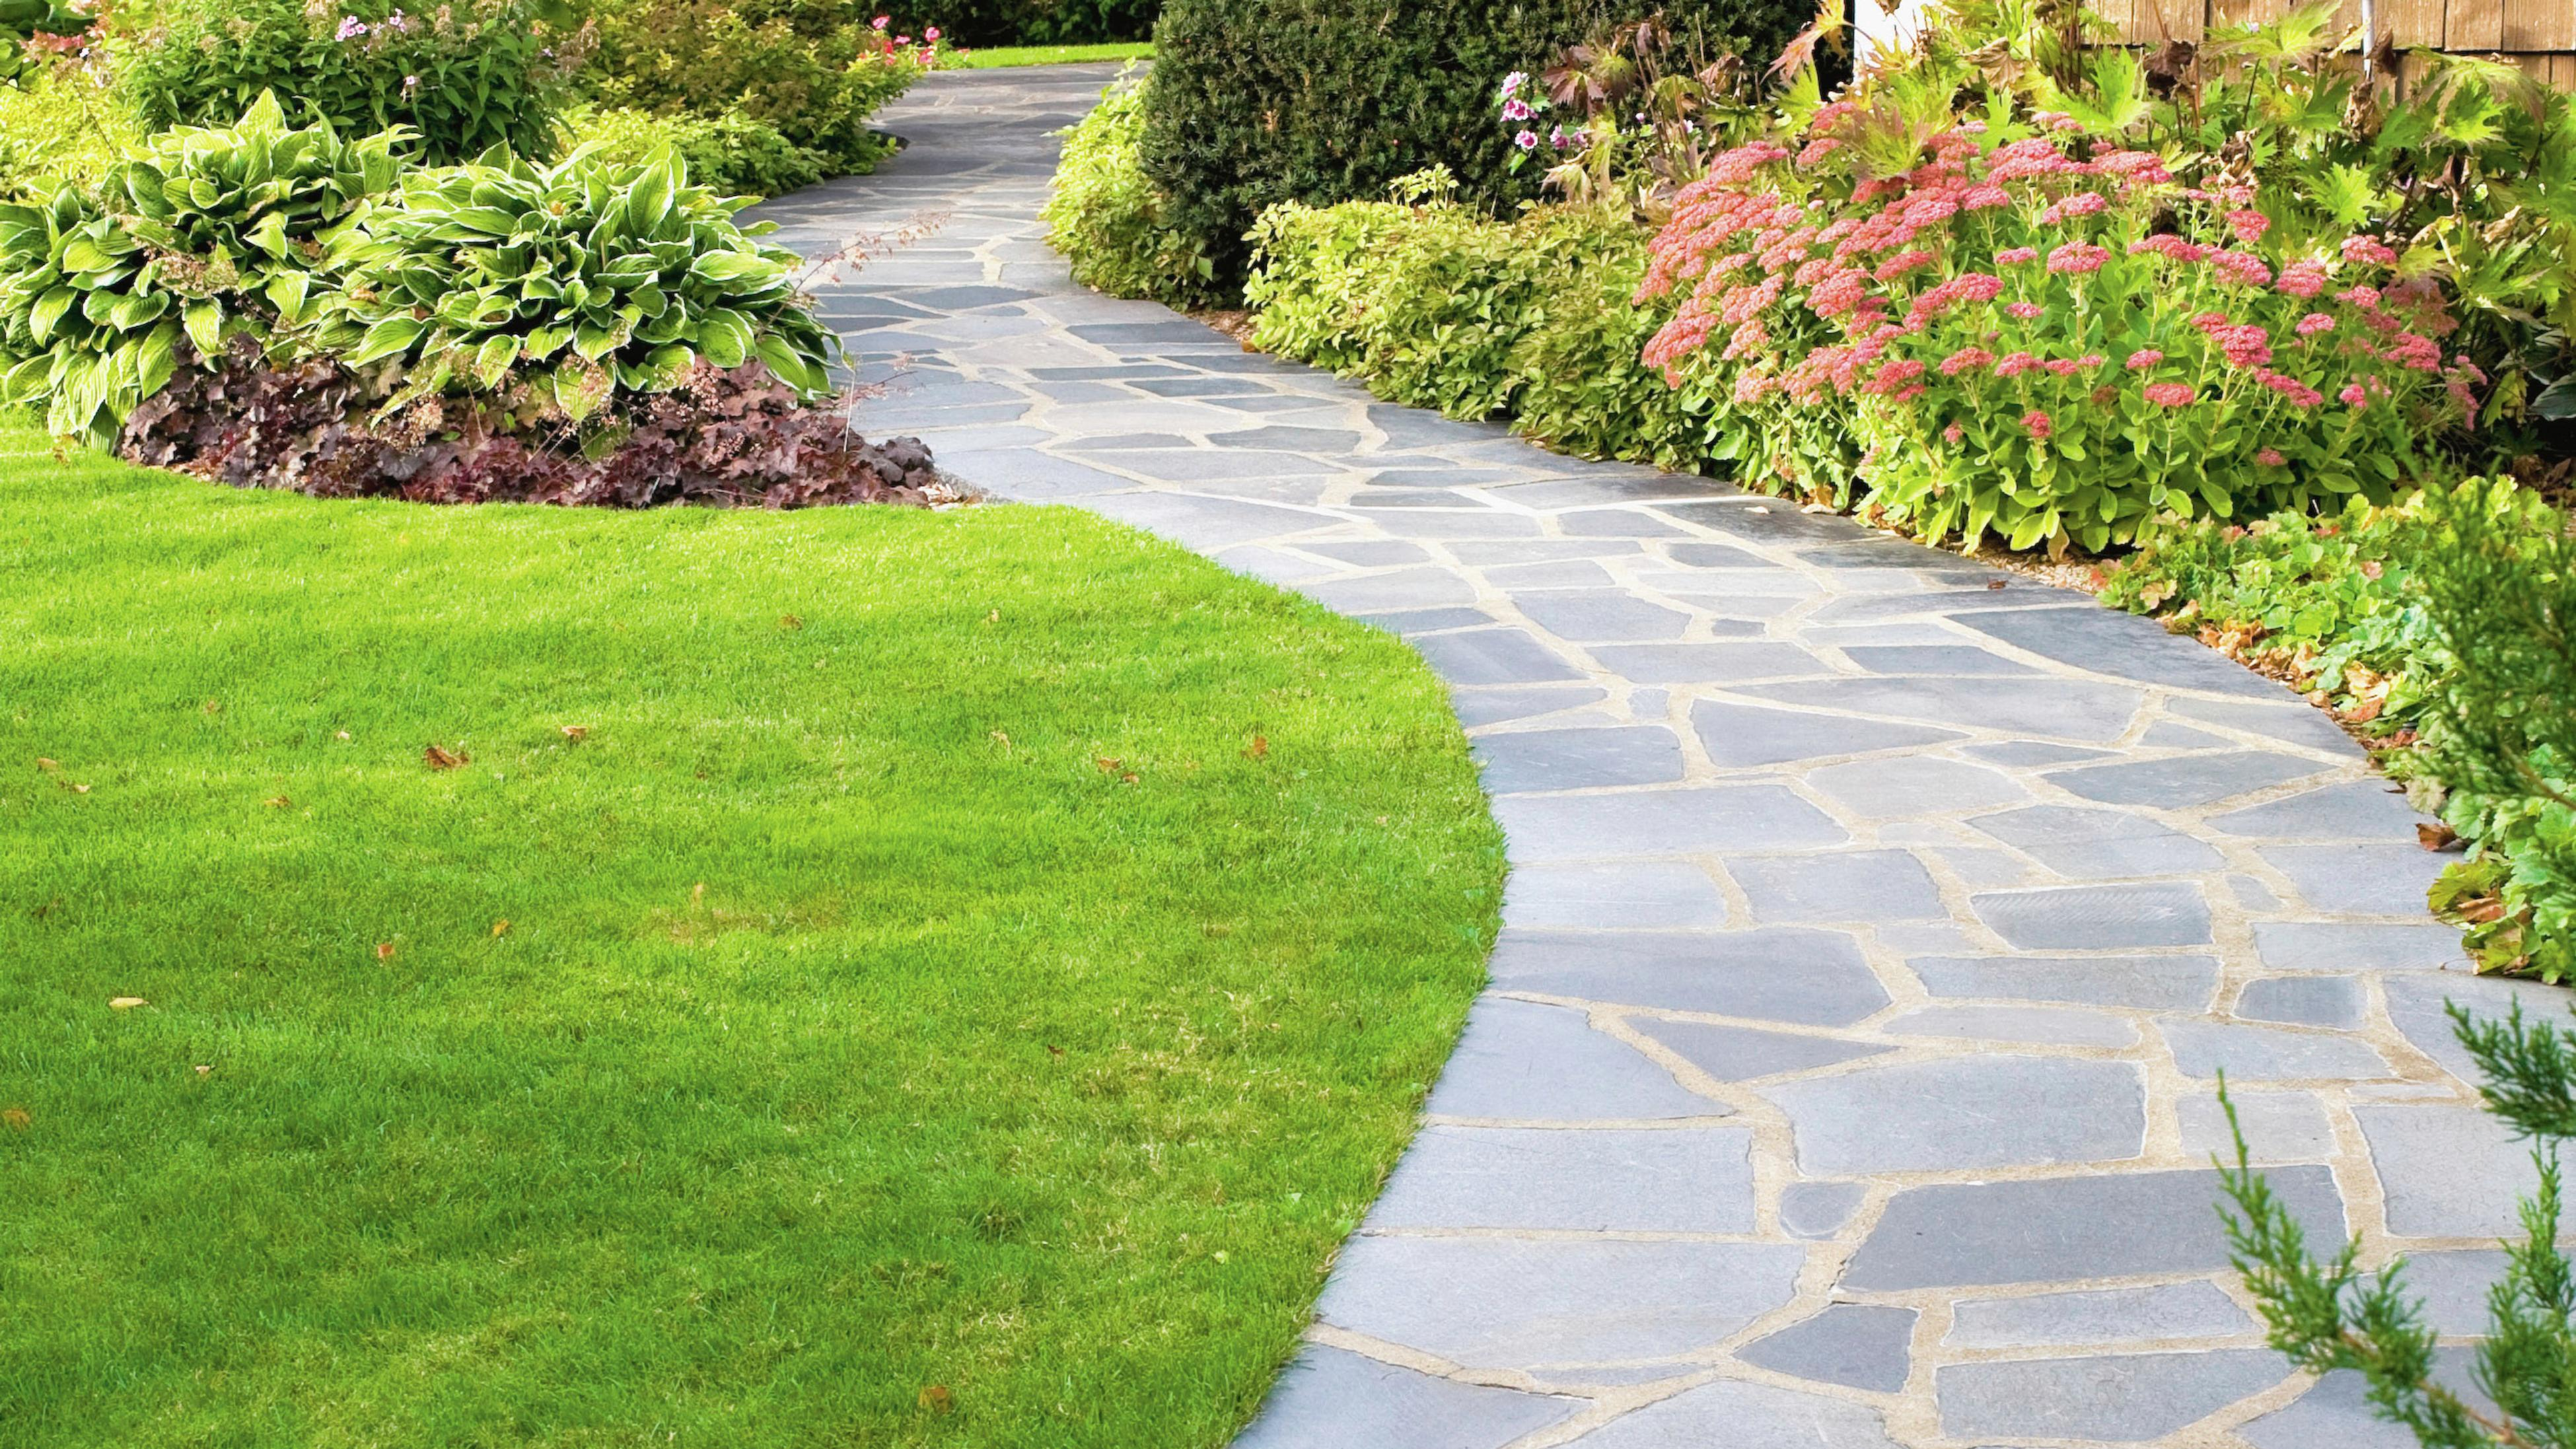 A paved walkway to a home